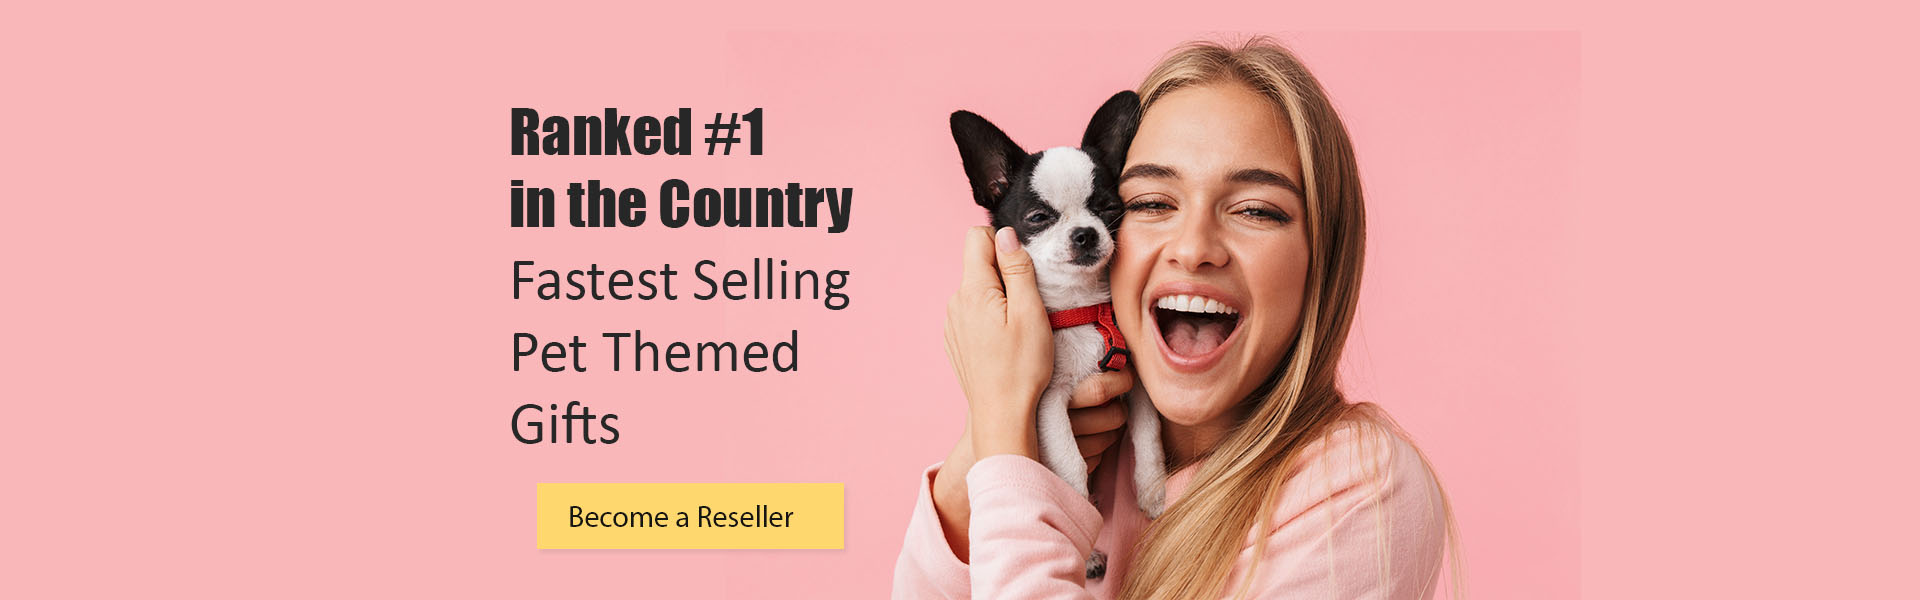 E&S Pets Ranked # 1 in the country - Pet Themed Gifts Wholesale